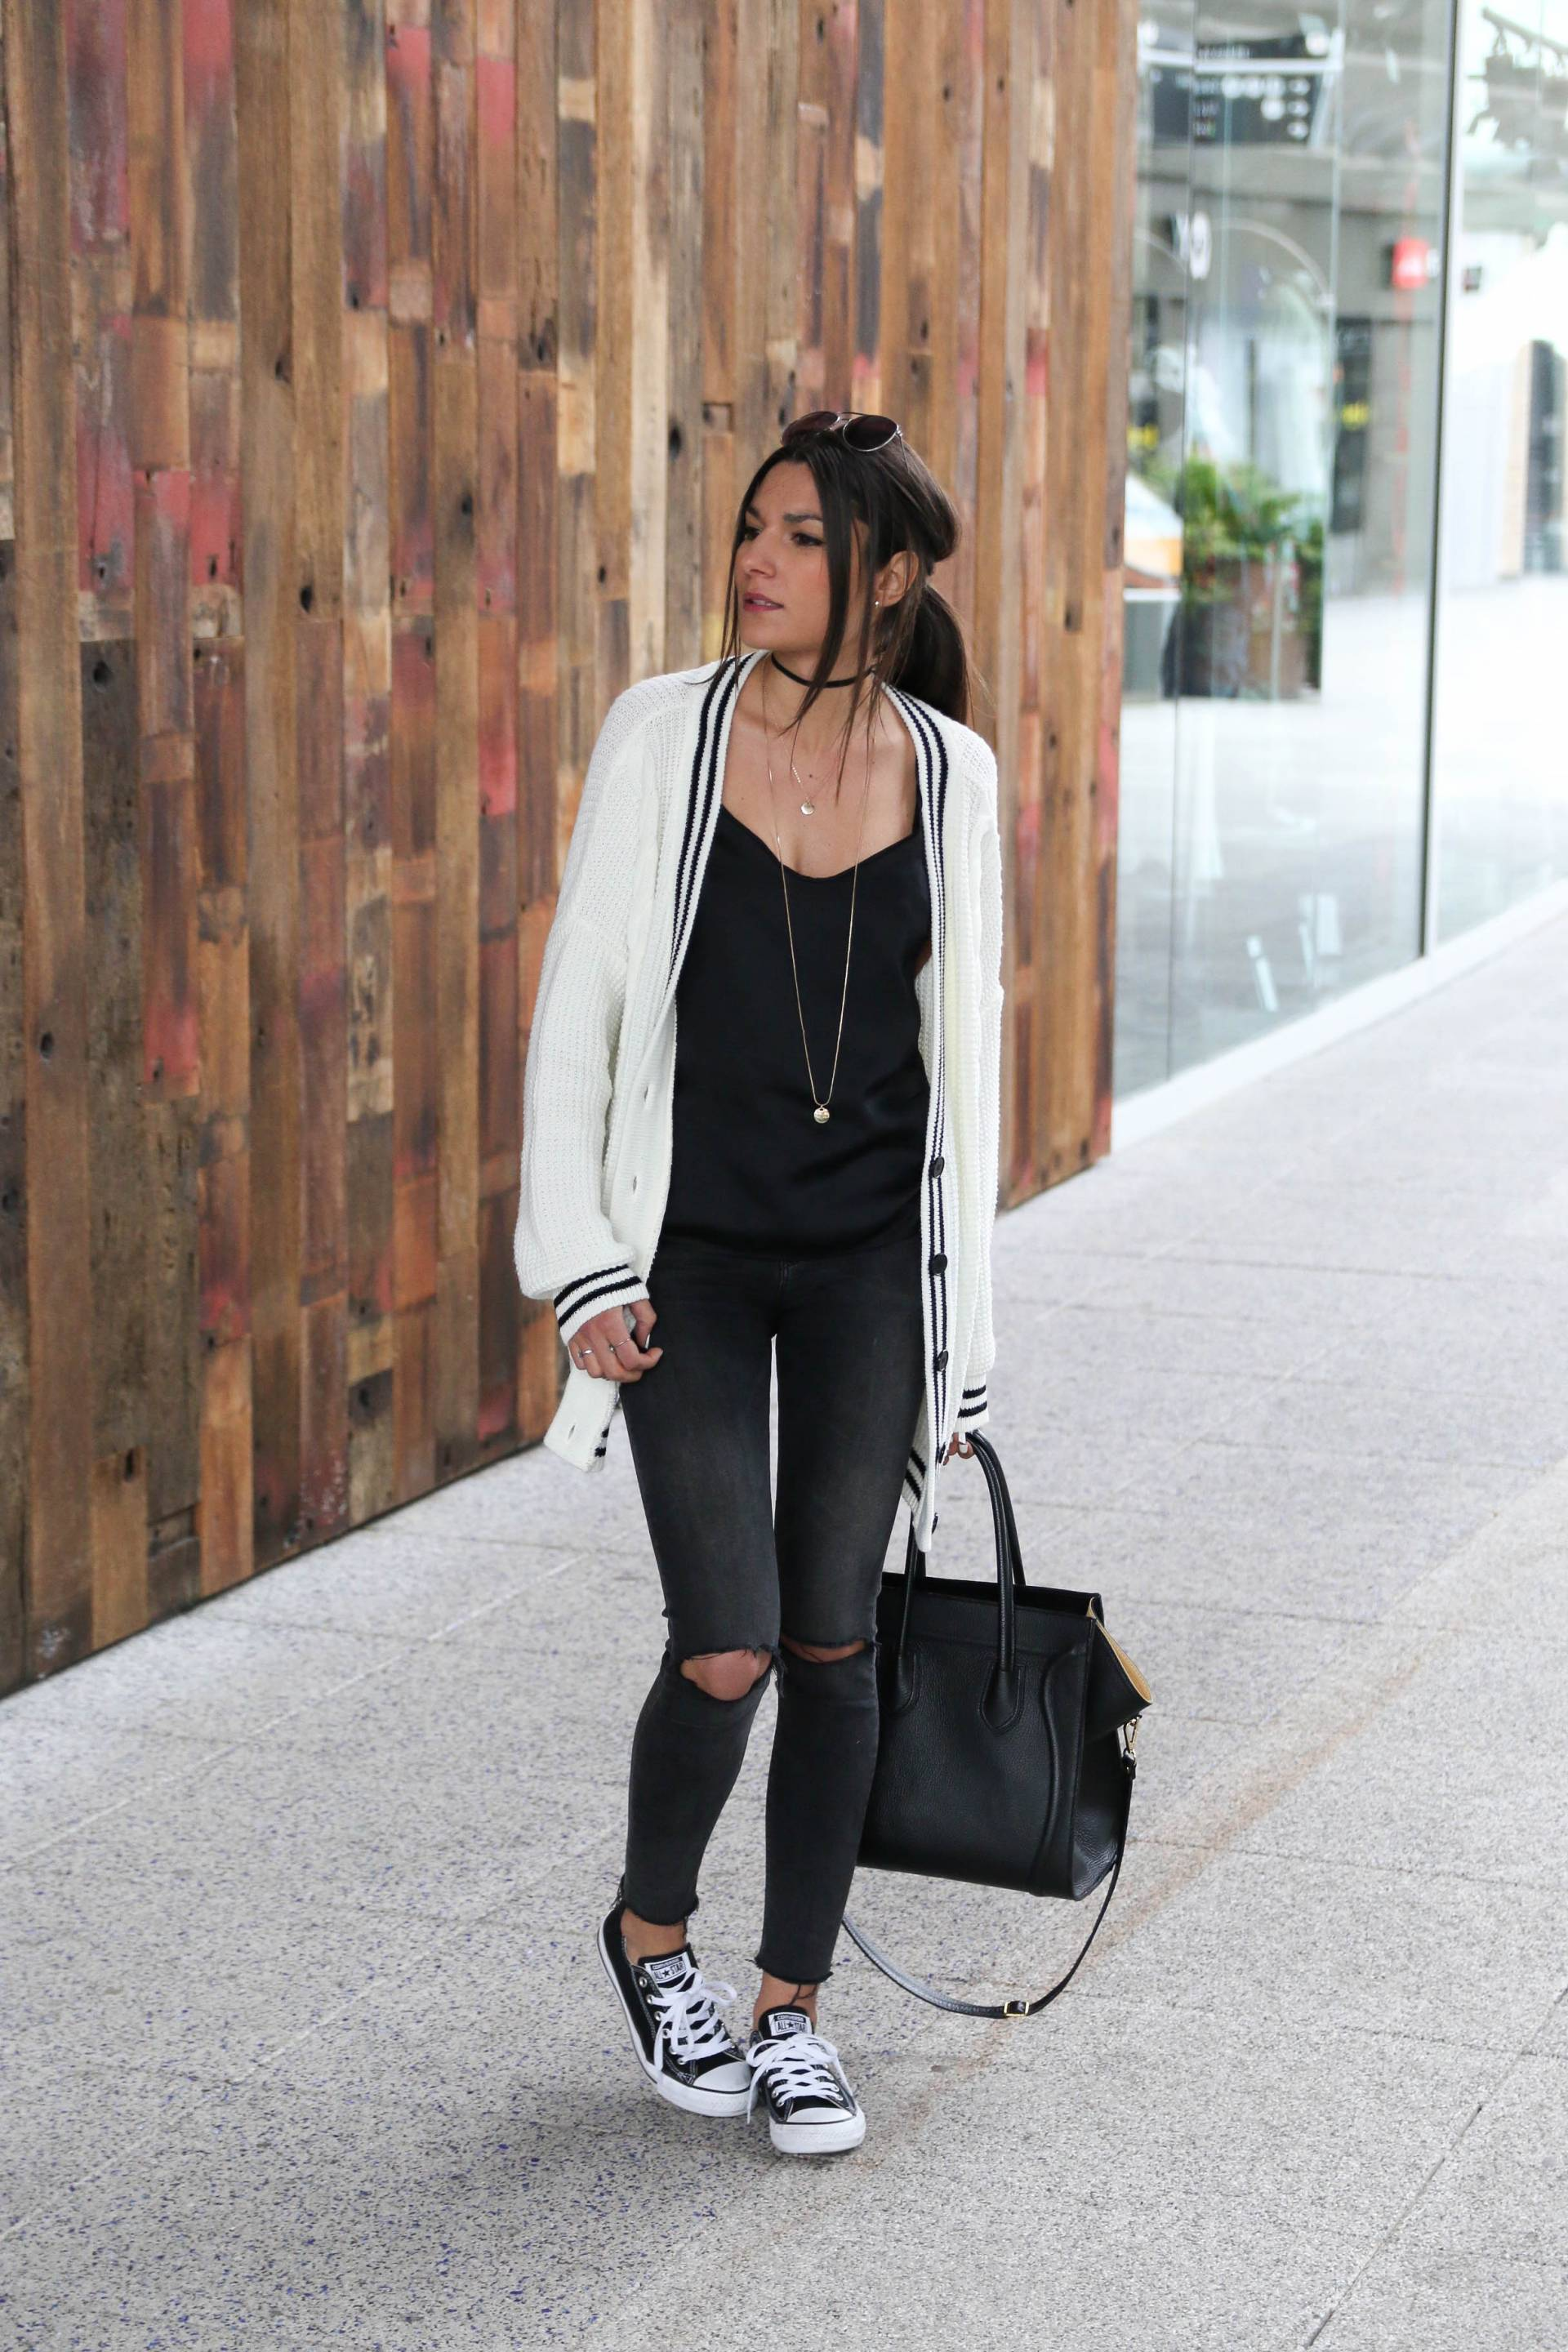 50+ Fashion Hacks That Will Show You How To Wear Converse - Outfits With Converse - Just The Design